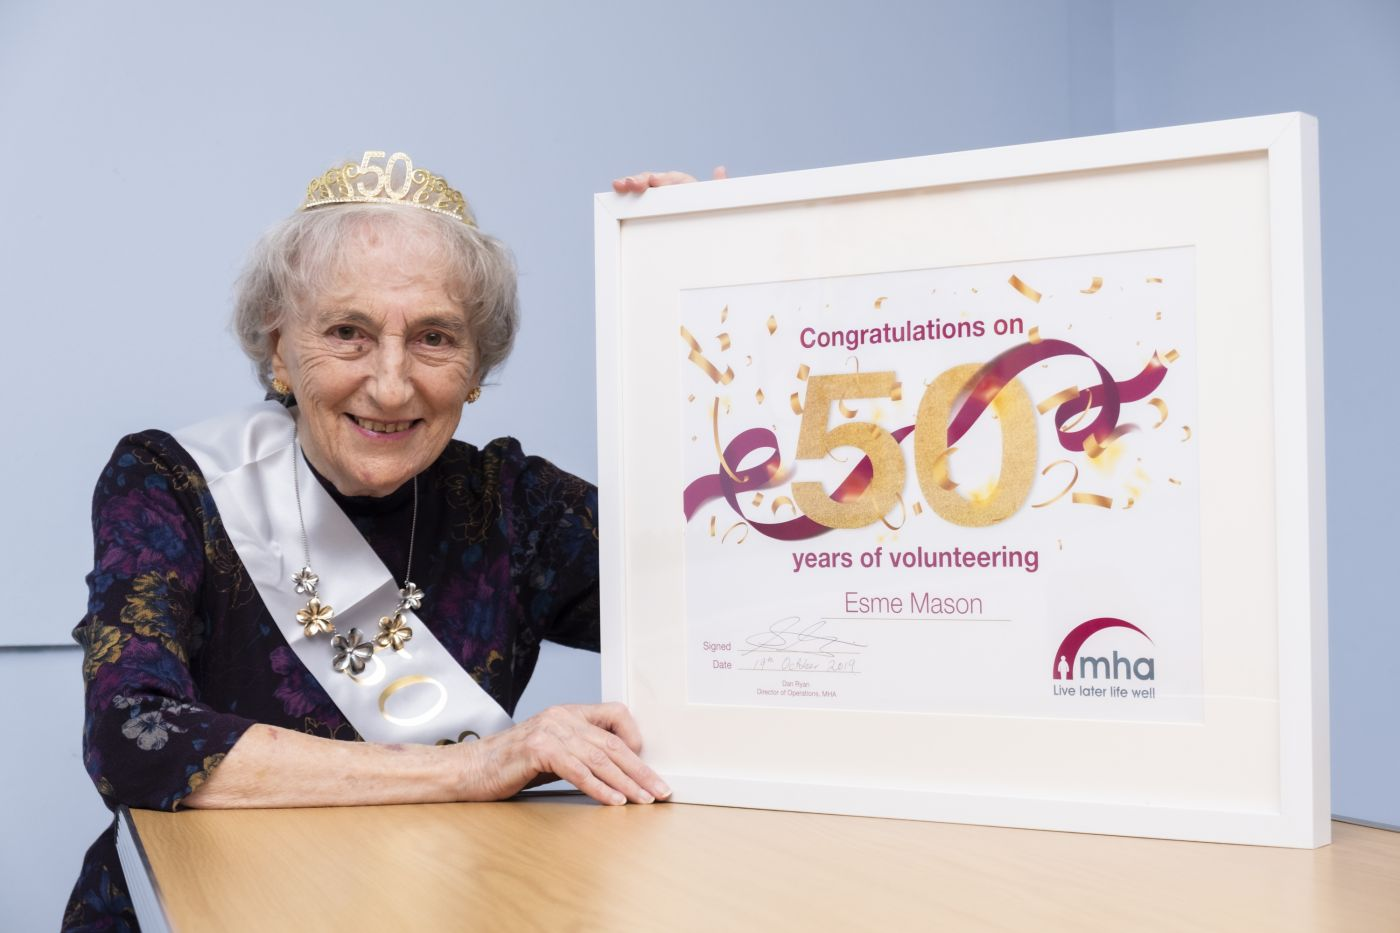 Esme Mason with her 50 year volunteering certificate